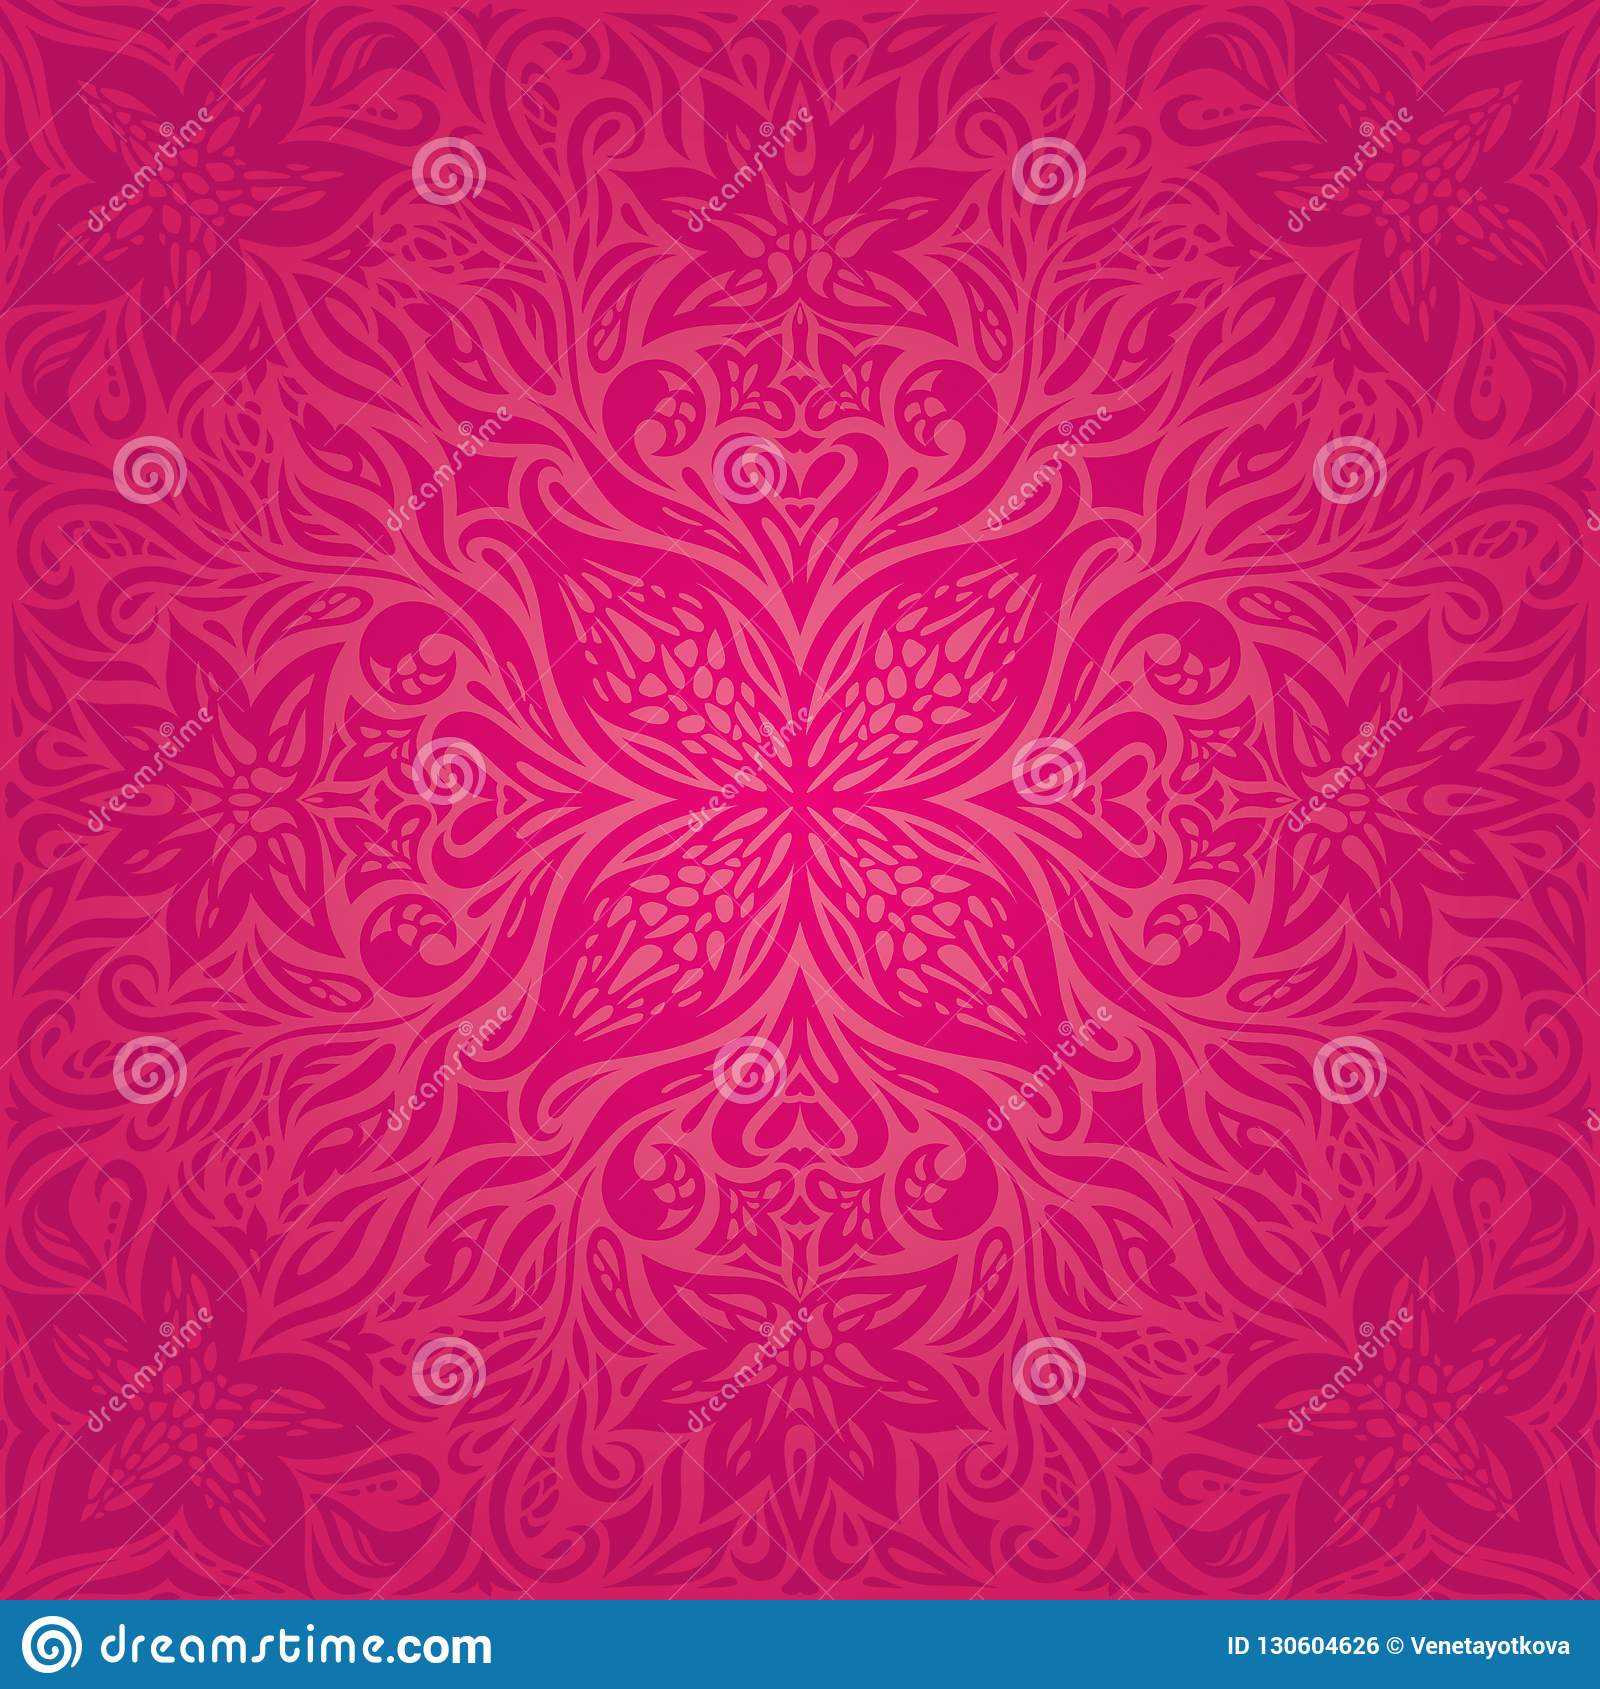 Red Flowers, Gorgeous decorative Floral fashion background mandala design